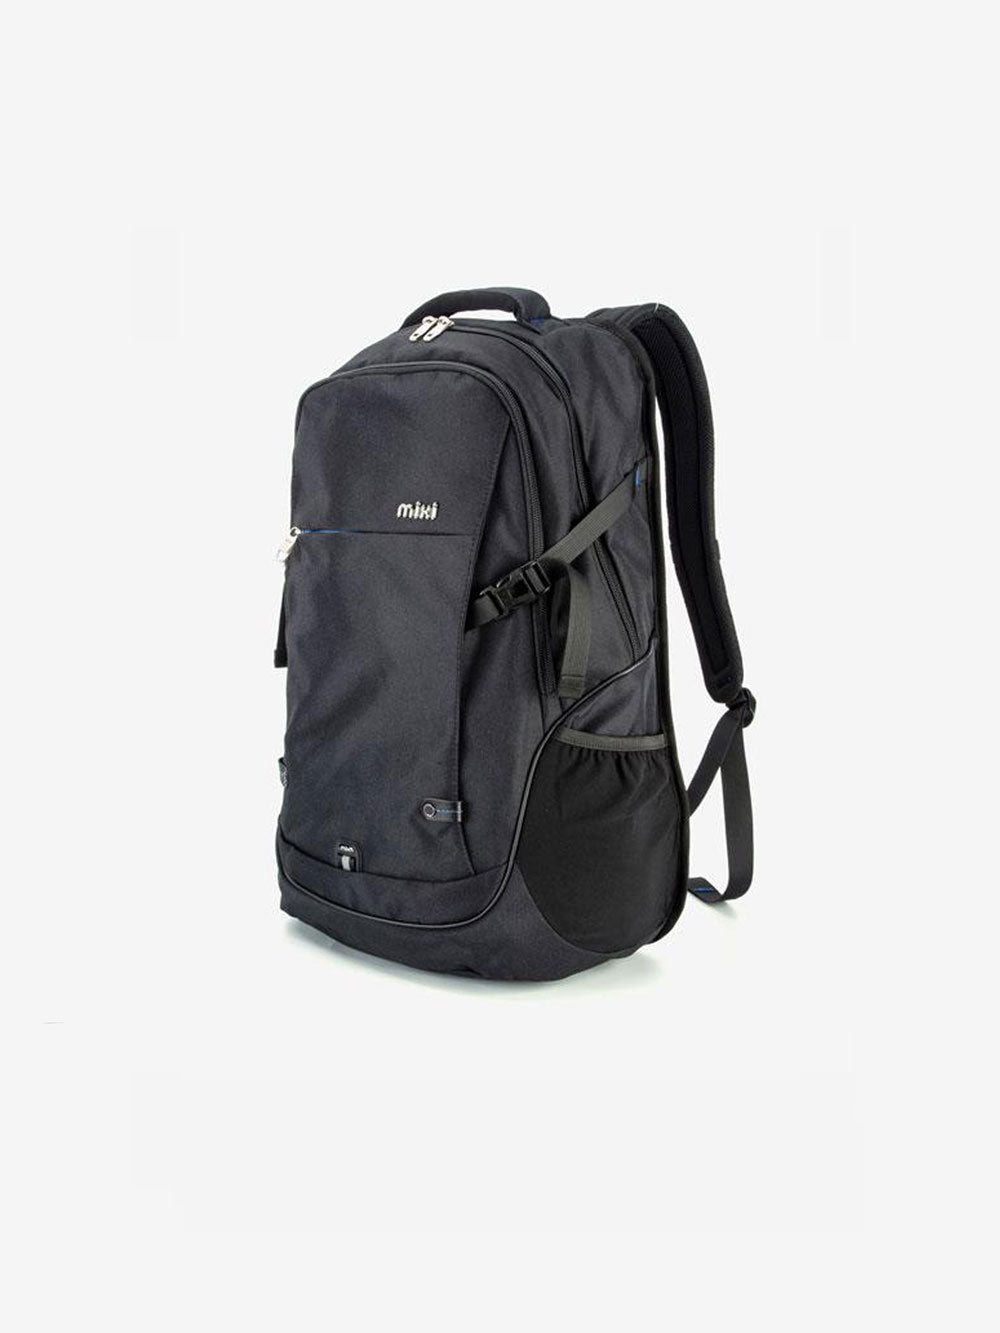 The Heavy Duty Backpack in Black